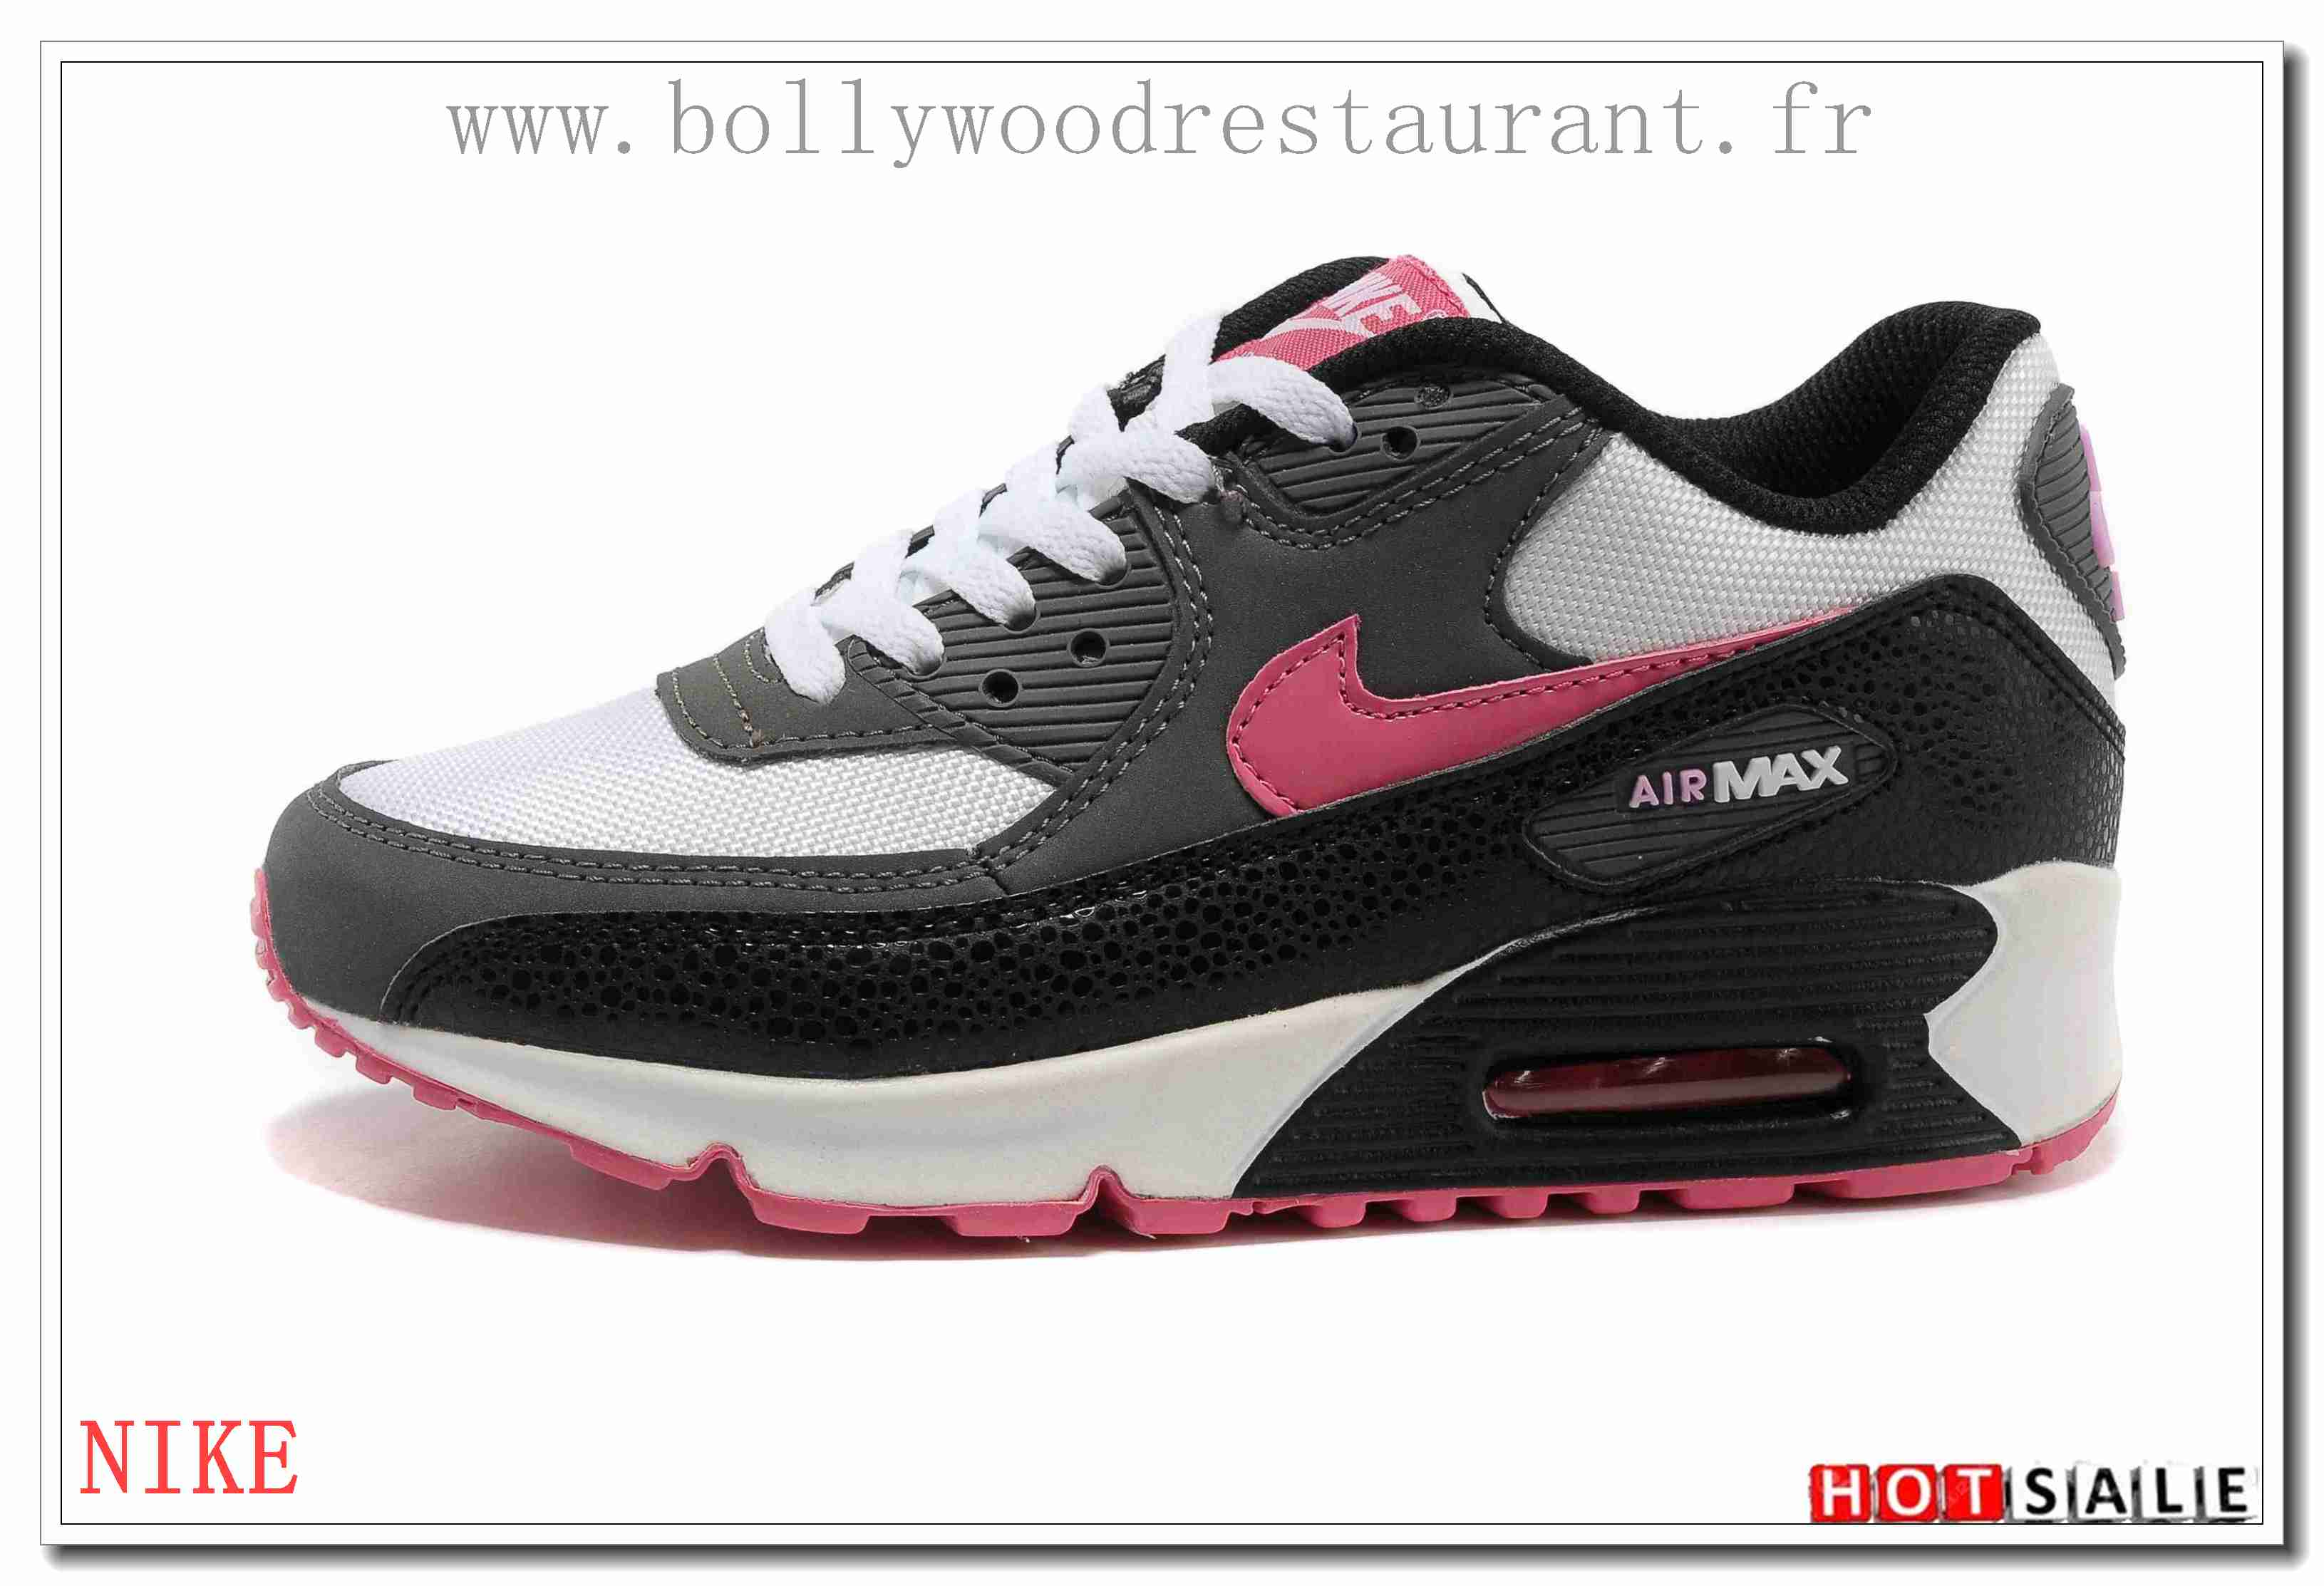 quality design 8e7fb 41231 LZ4477 Moins Cher 2018 Nouveau style Nike Air Max 90 - Femme Chaussures -  Rose Promotions